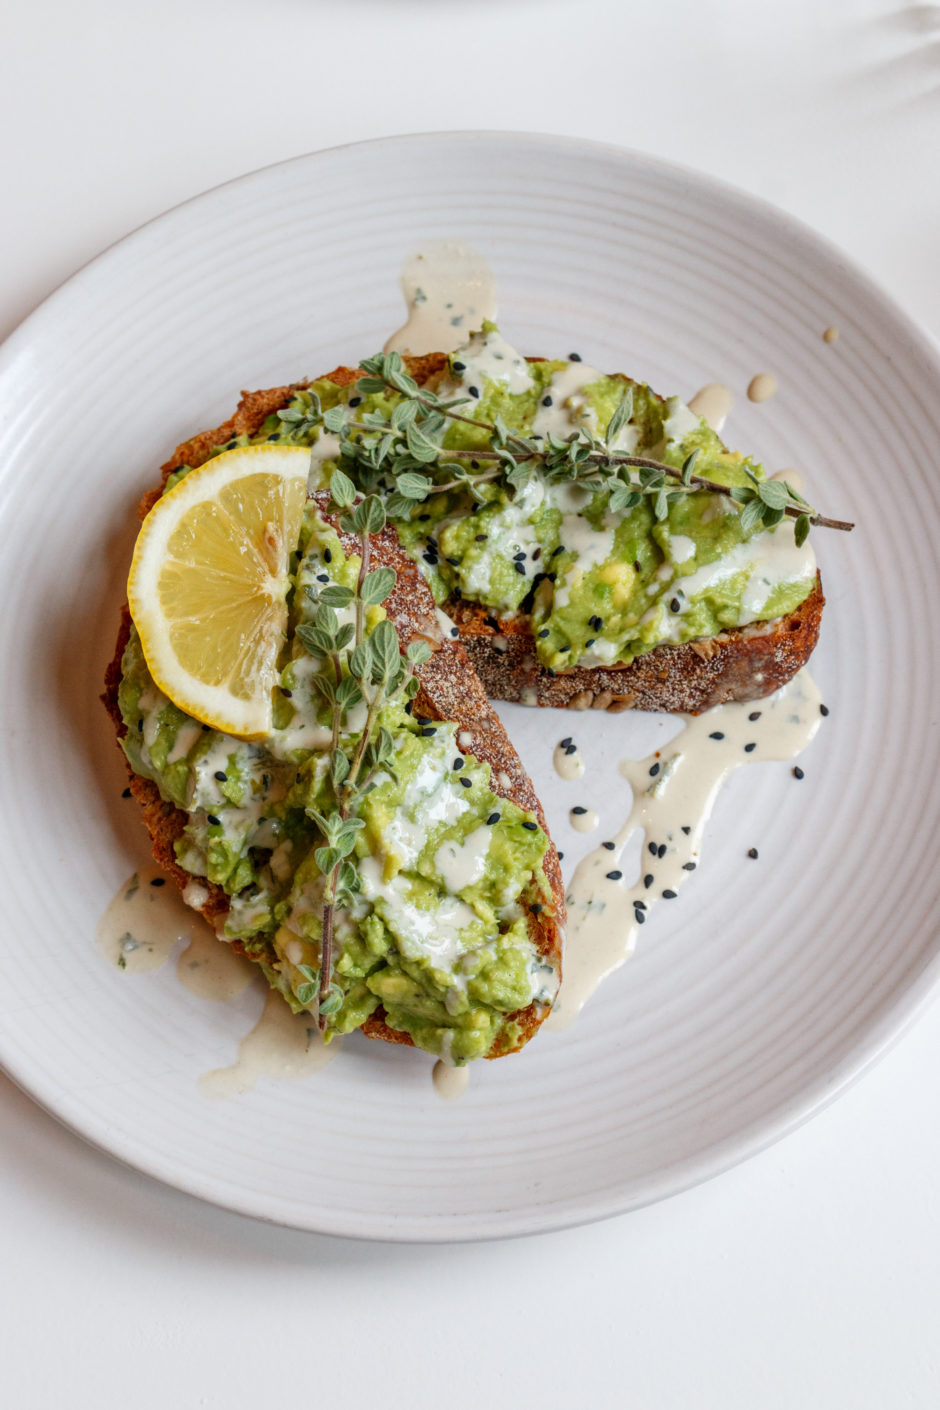 Cotton Cake avocado toast